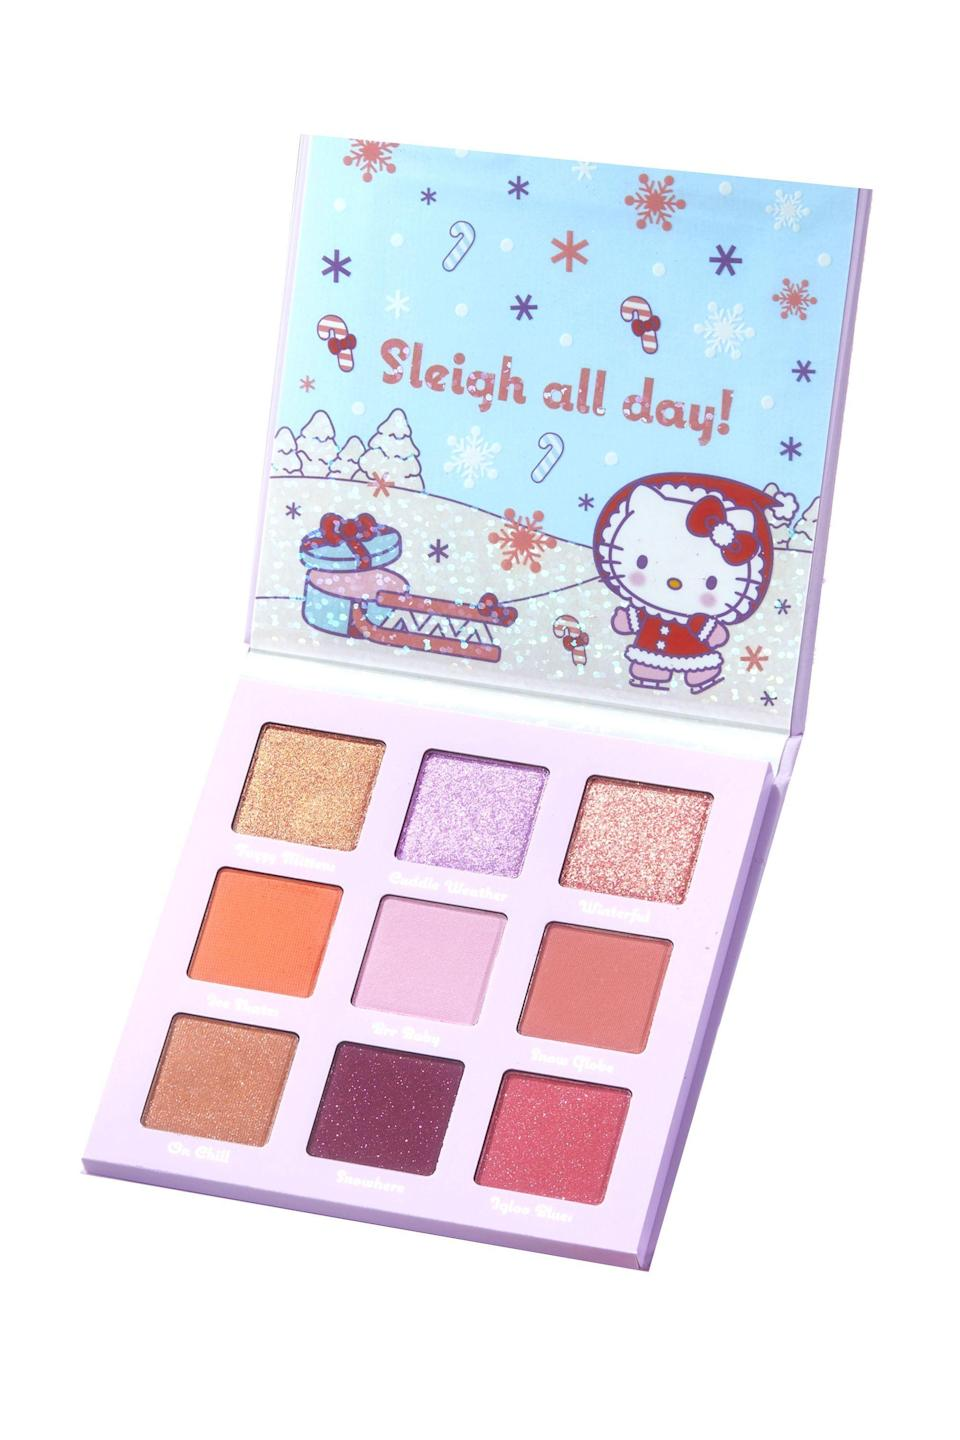 """<p><strong>ColourPop</strong></p><p><strong>$16.00</strong></p><p><a href=""""https://go.redirectingat.com?id=74968X1596630&url=https%3A%2F%2Fcolourpop.com%2Fproducts%2Fsnow-much-fun-hello-kitty-pressed-powder-makeup-palette&sref=https%3A%2F%2Fwww.elle.com%2Fbeauty%2Fg34850574%2Fhello-kitty-best-beauty-products%2F"""" rel=""""nofollow noopener"""" target=""""_blank"""" data-ylk=""""slk:Shop Now"""" class=""""link rapid-noclick-resp"""">Shop Now</a></p>"""